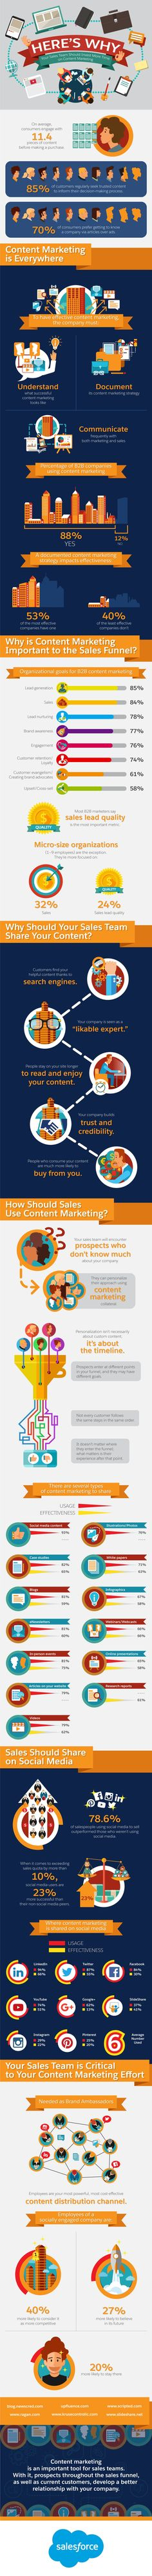 Why Your Sales Reps Need to Invest More Time in Content Marketing [Infographic]